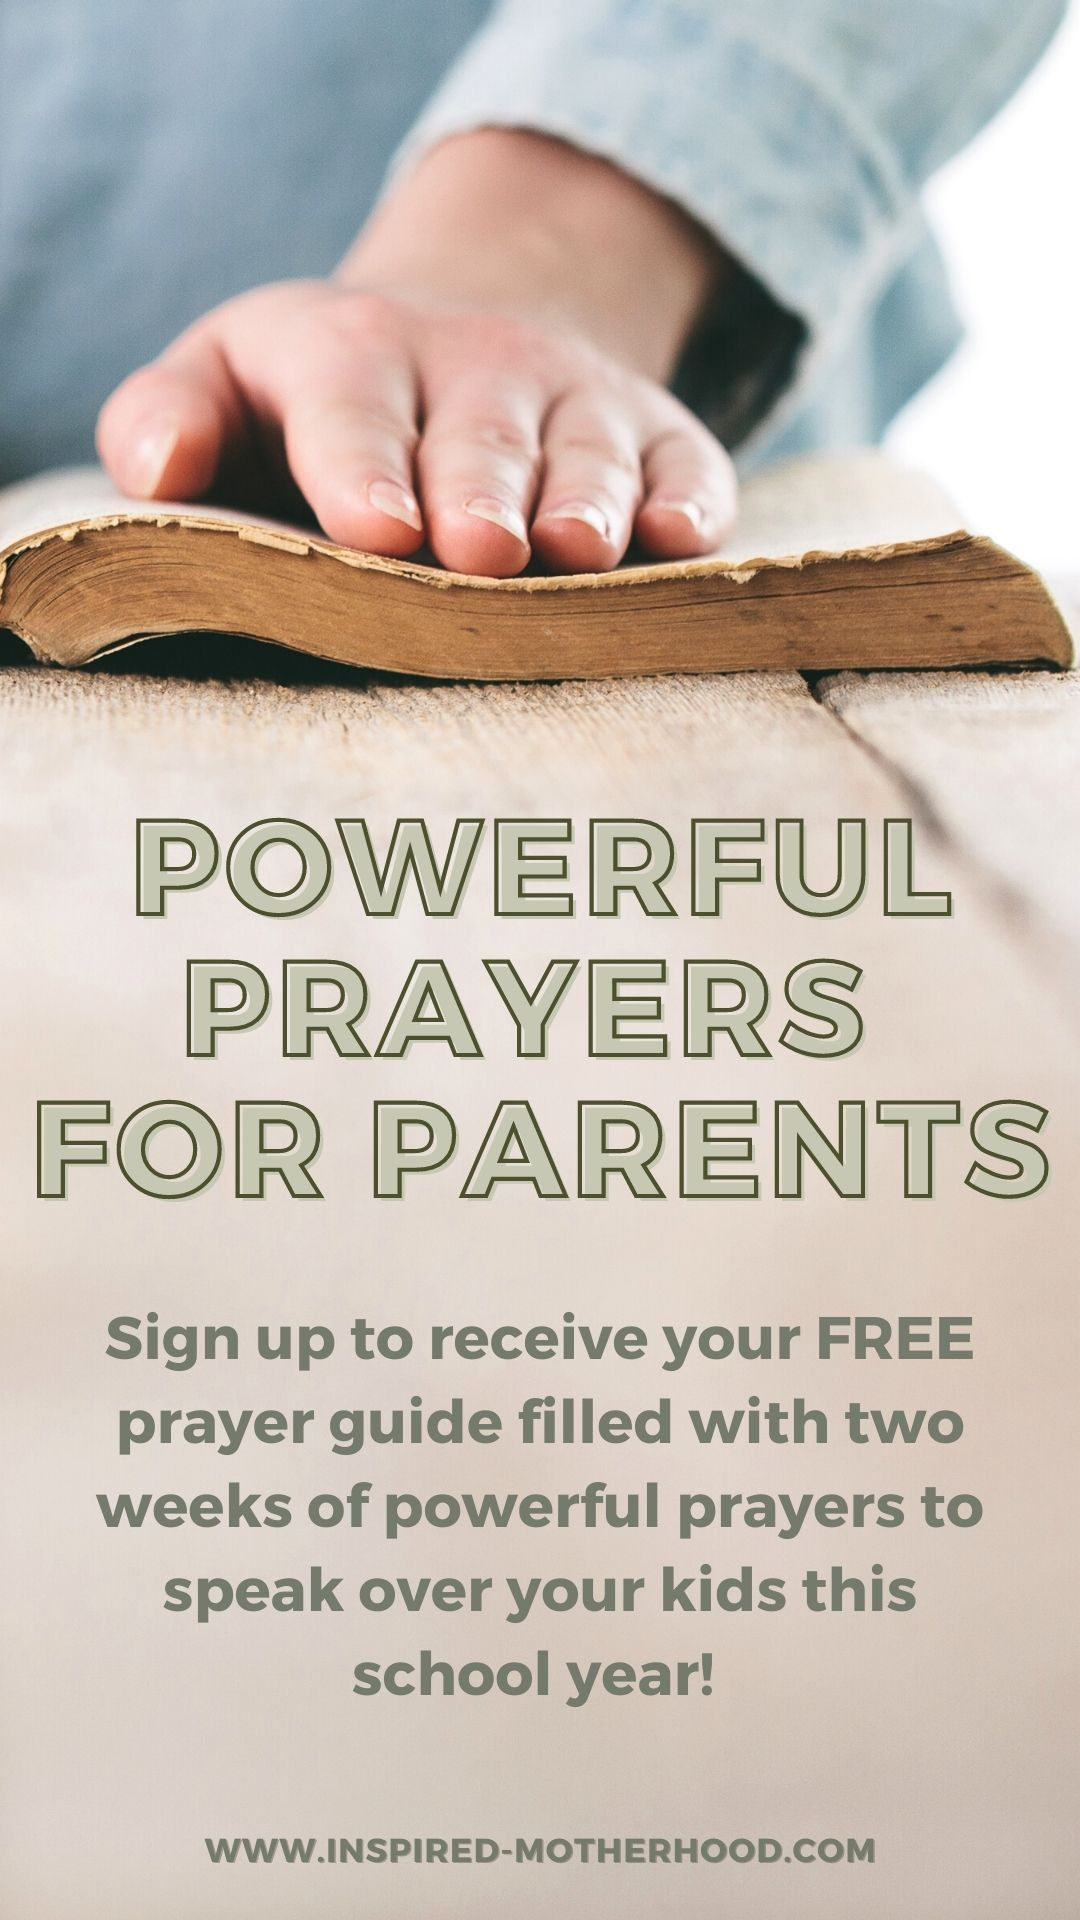 Worried about your kids going back to school? Download this free prayer guide to speak life over your child's school year!